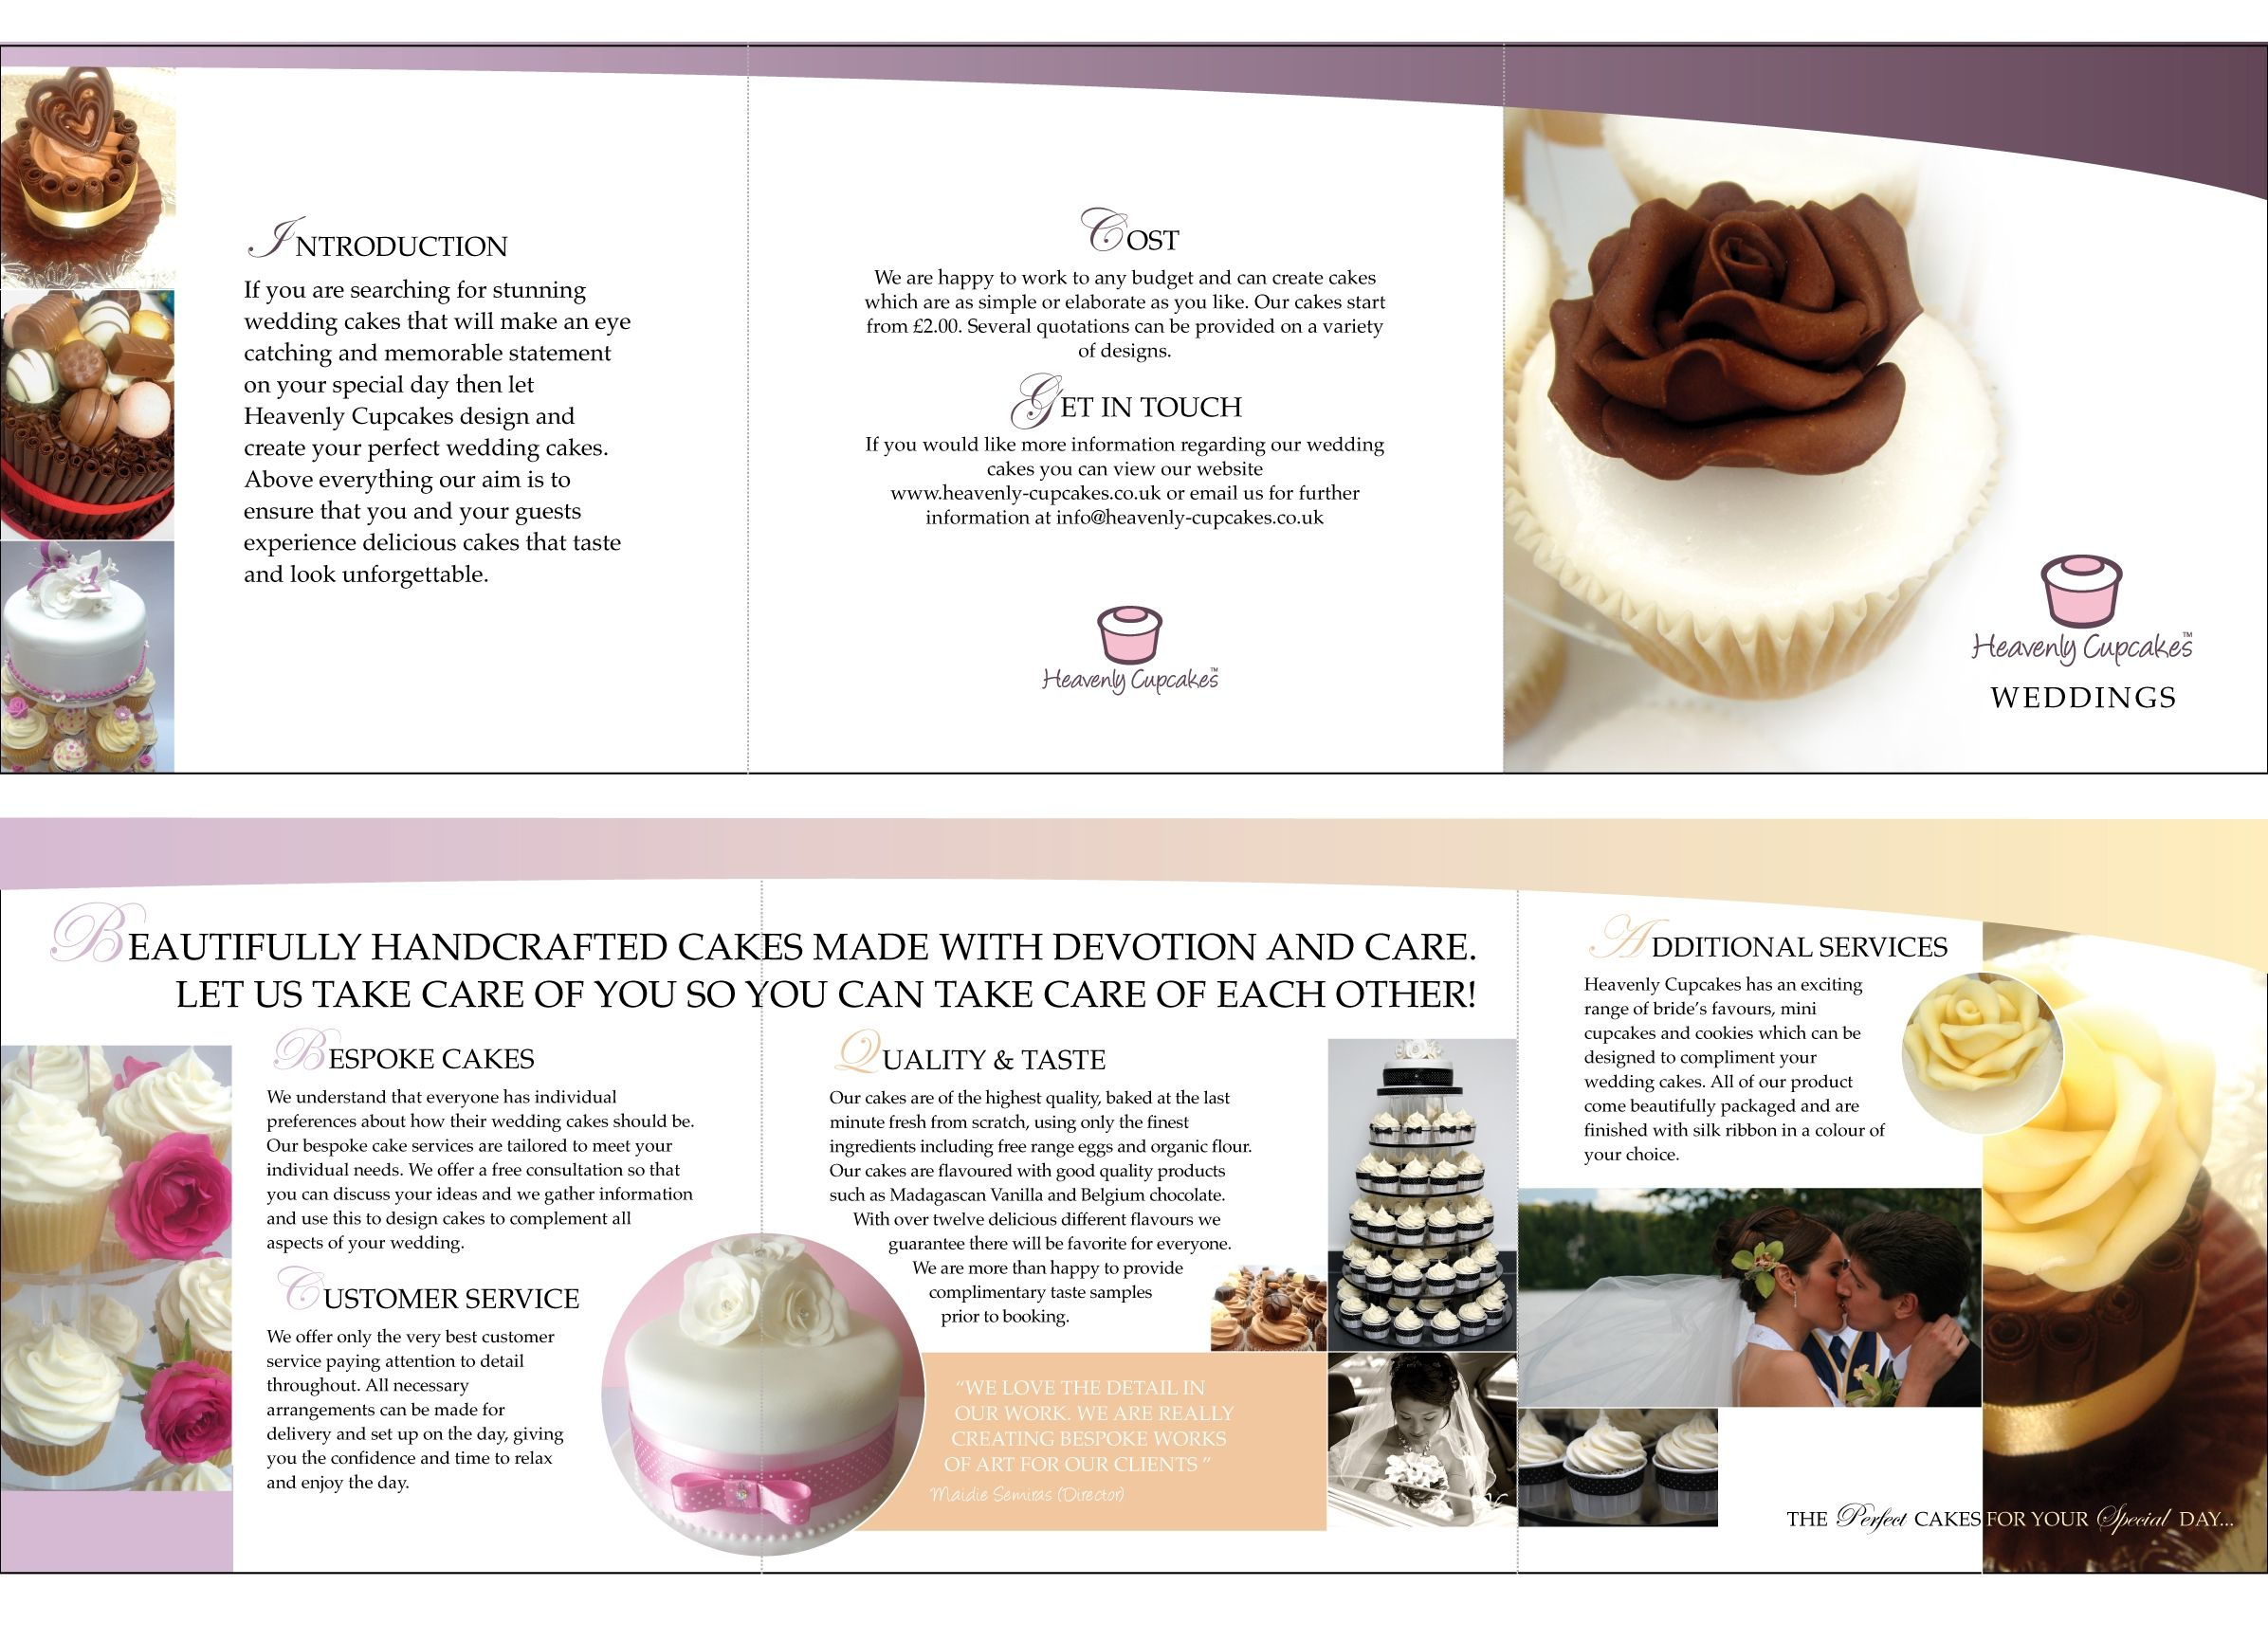 wedding cake brochure ideas pin by tarrer on cupcake logo branding 22104